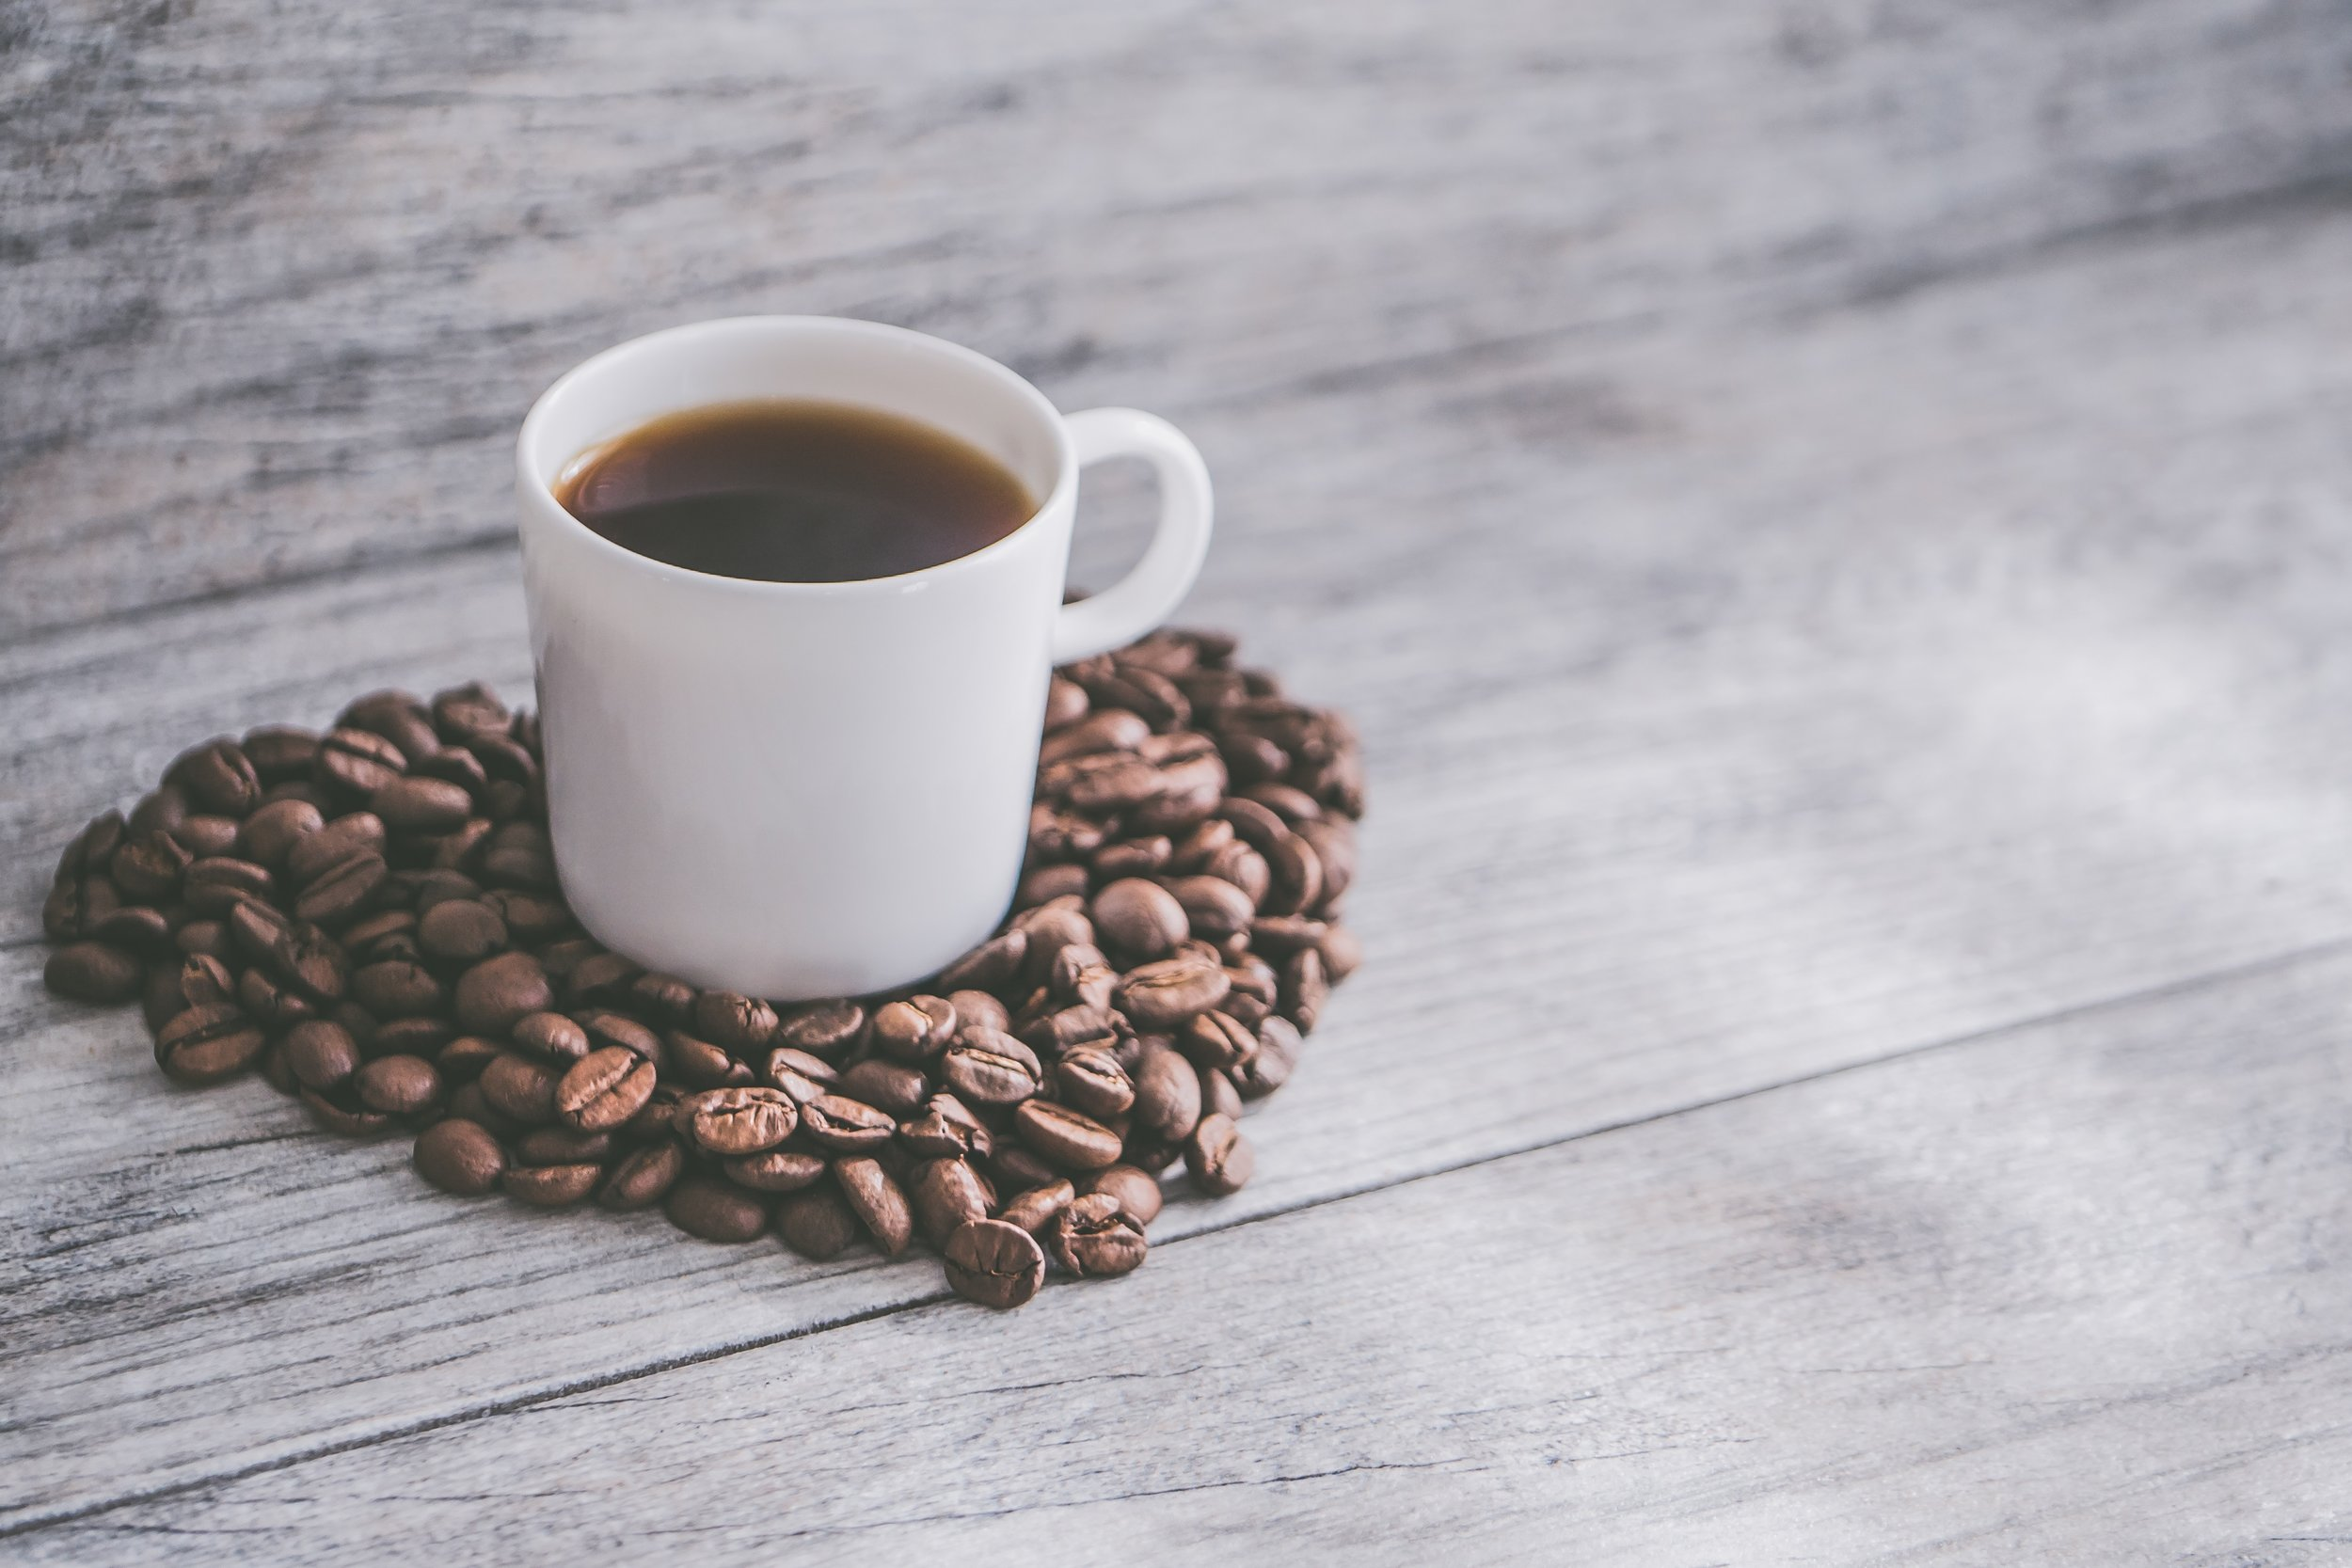 What's in your cup? - Smart coffee…Happy coffeeNot a coffee fan? We got you! This proprietary functional beverage comes in a hot chocolate flavor too!